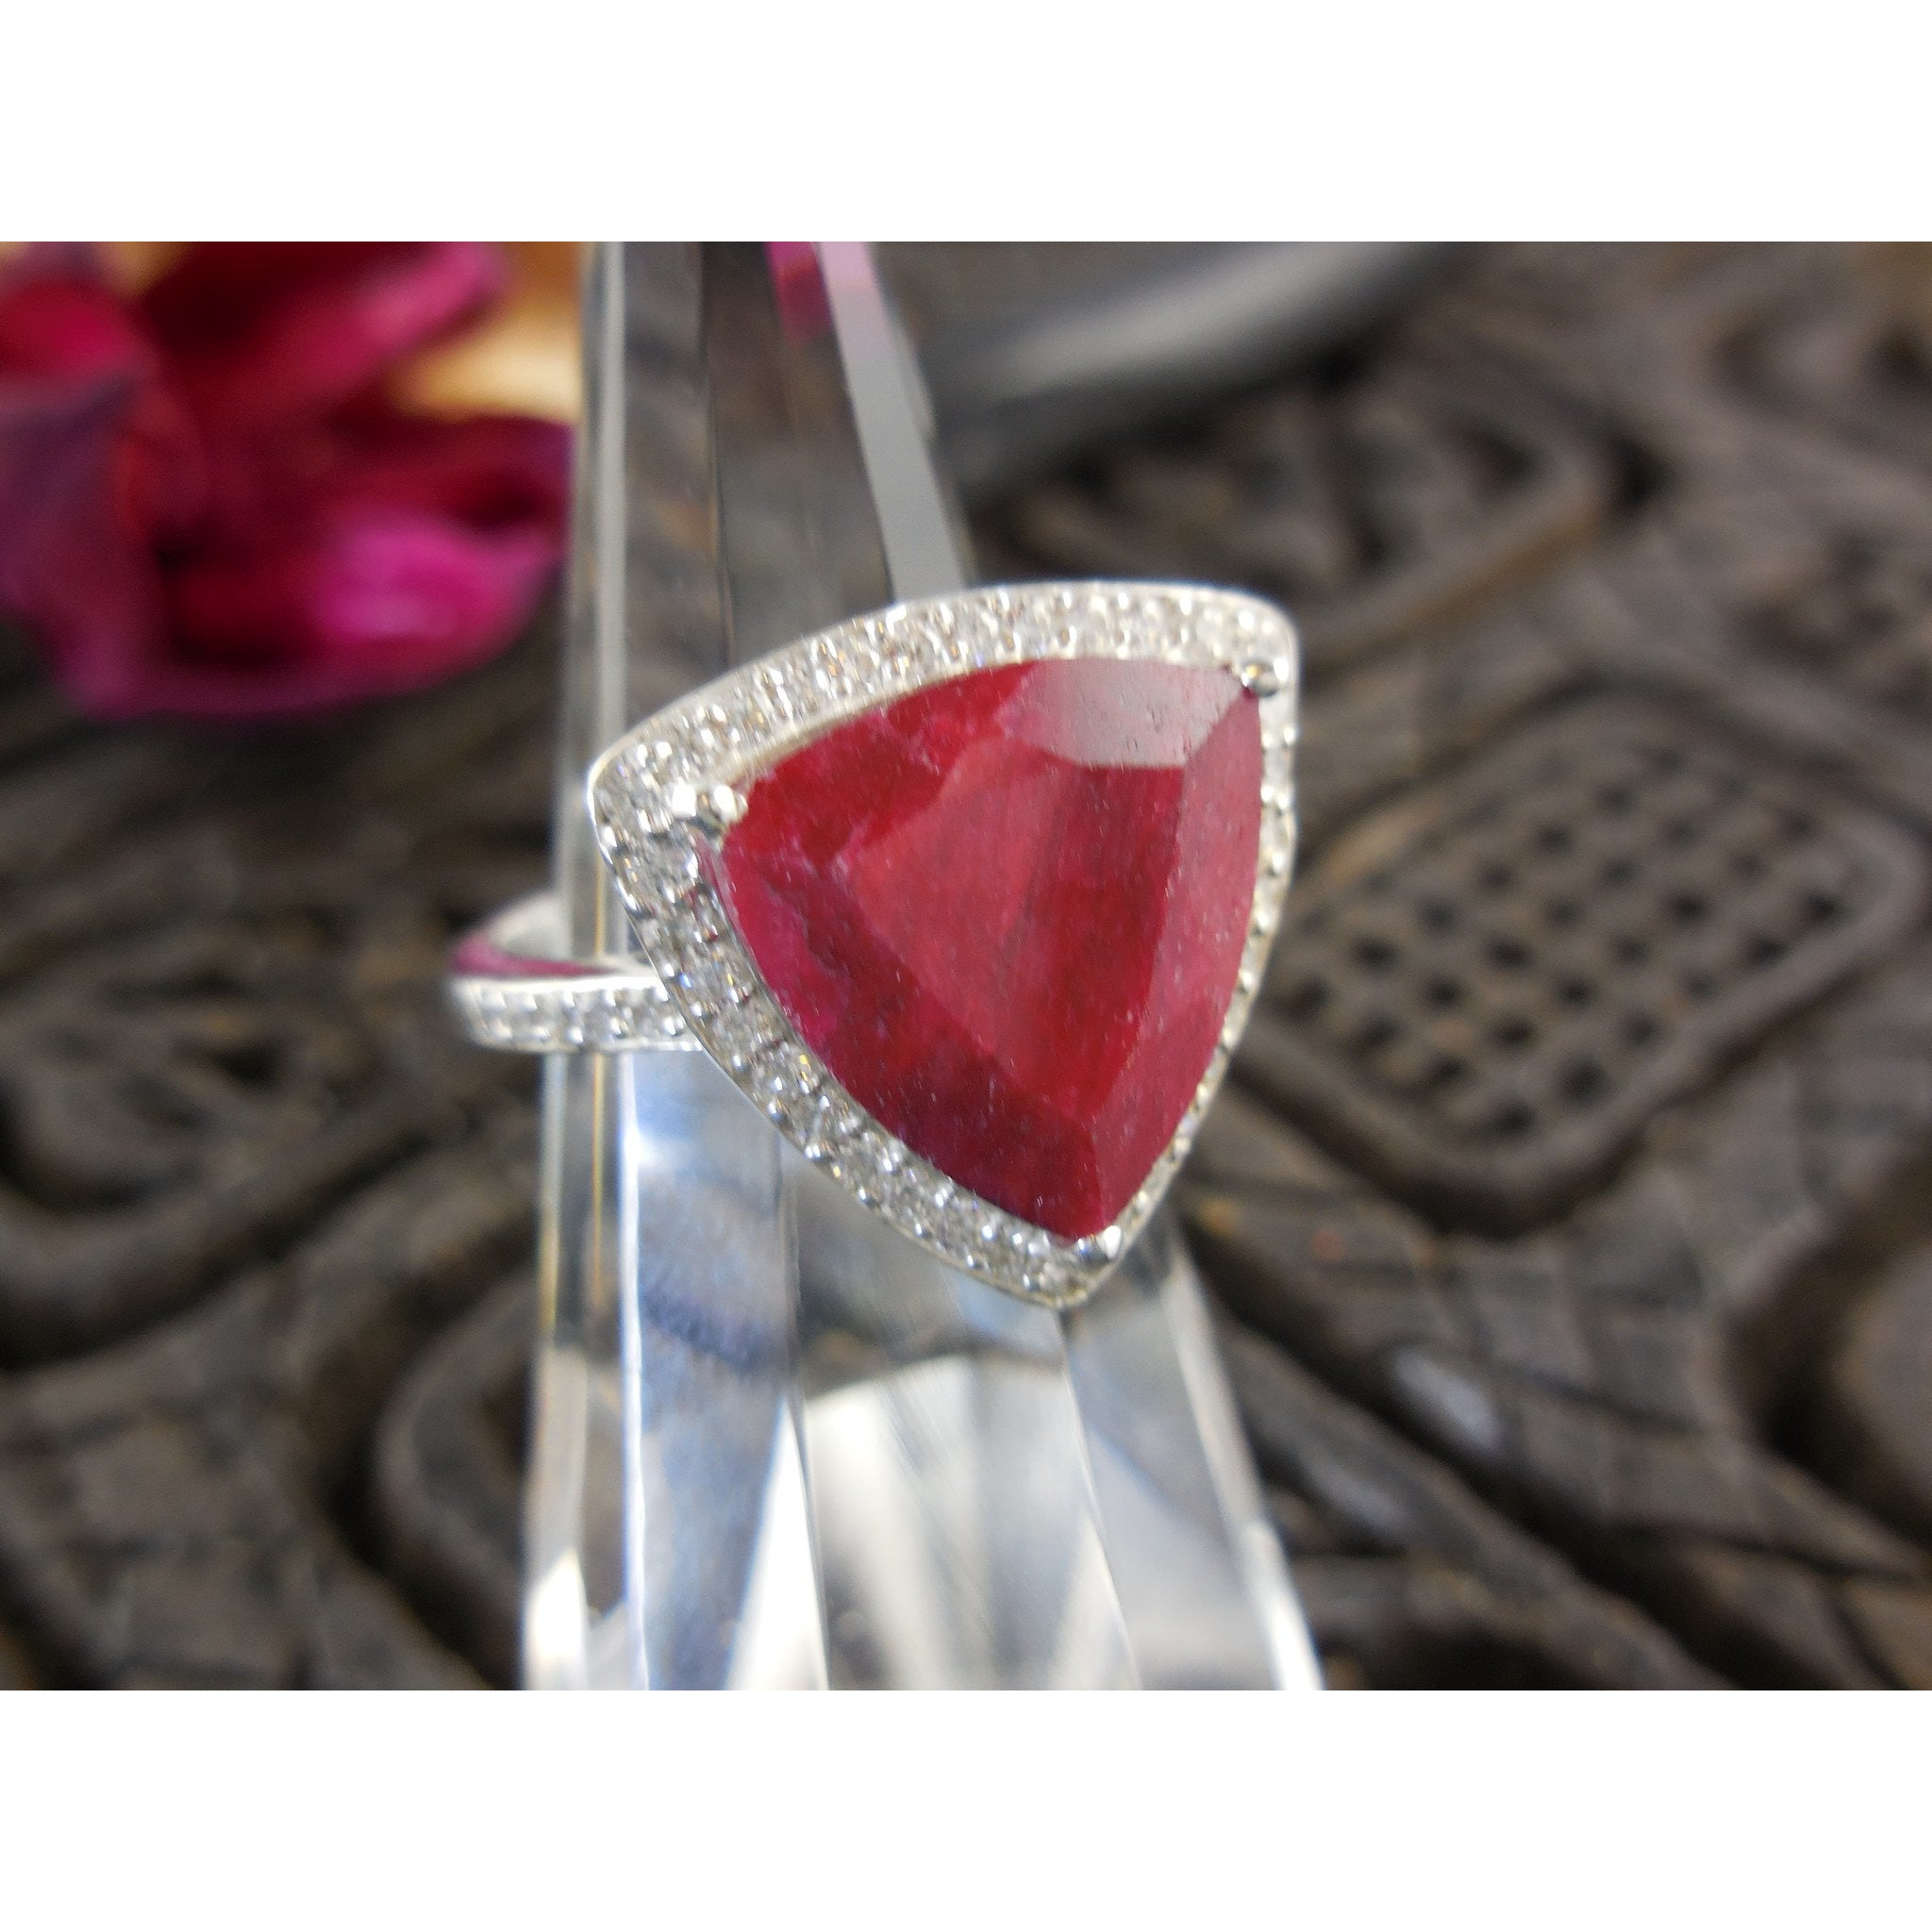 july king of the gems gemstone rubies minneapolis birthstone ruby